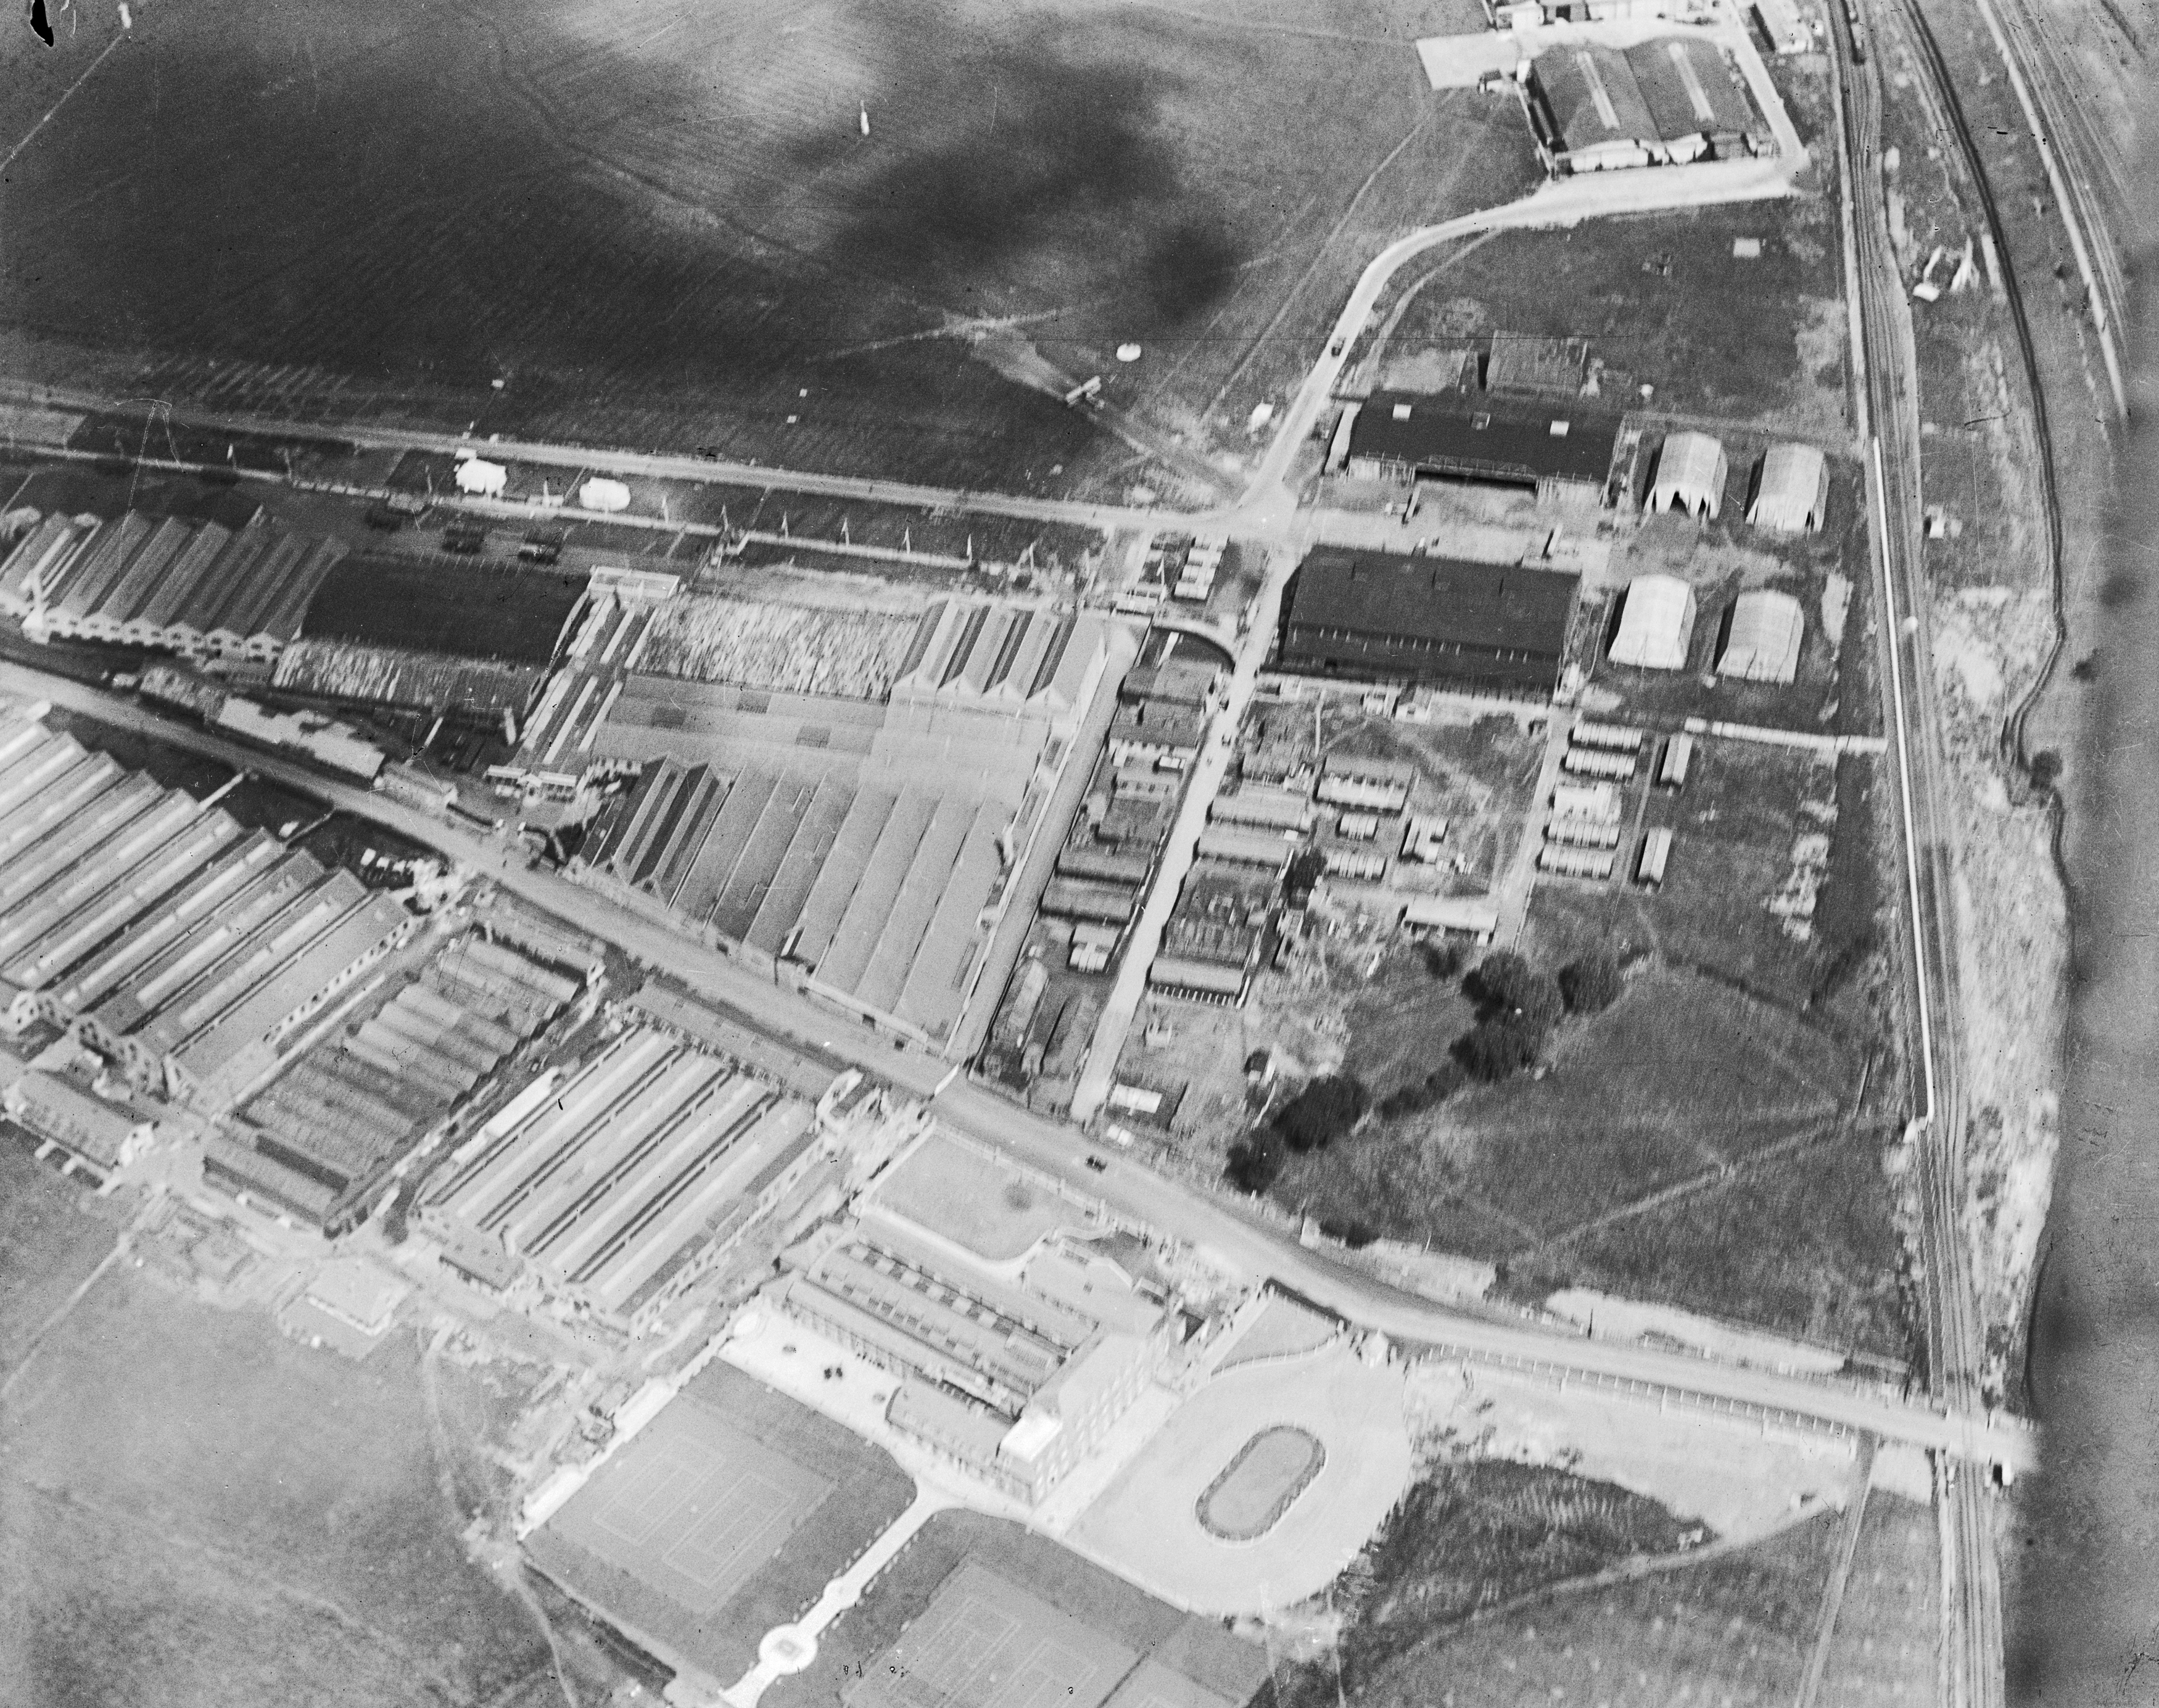 Aerodrome and Works, Hendon, 26 July 1919